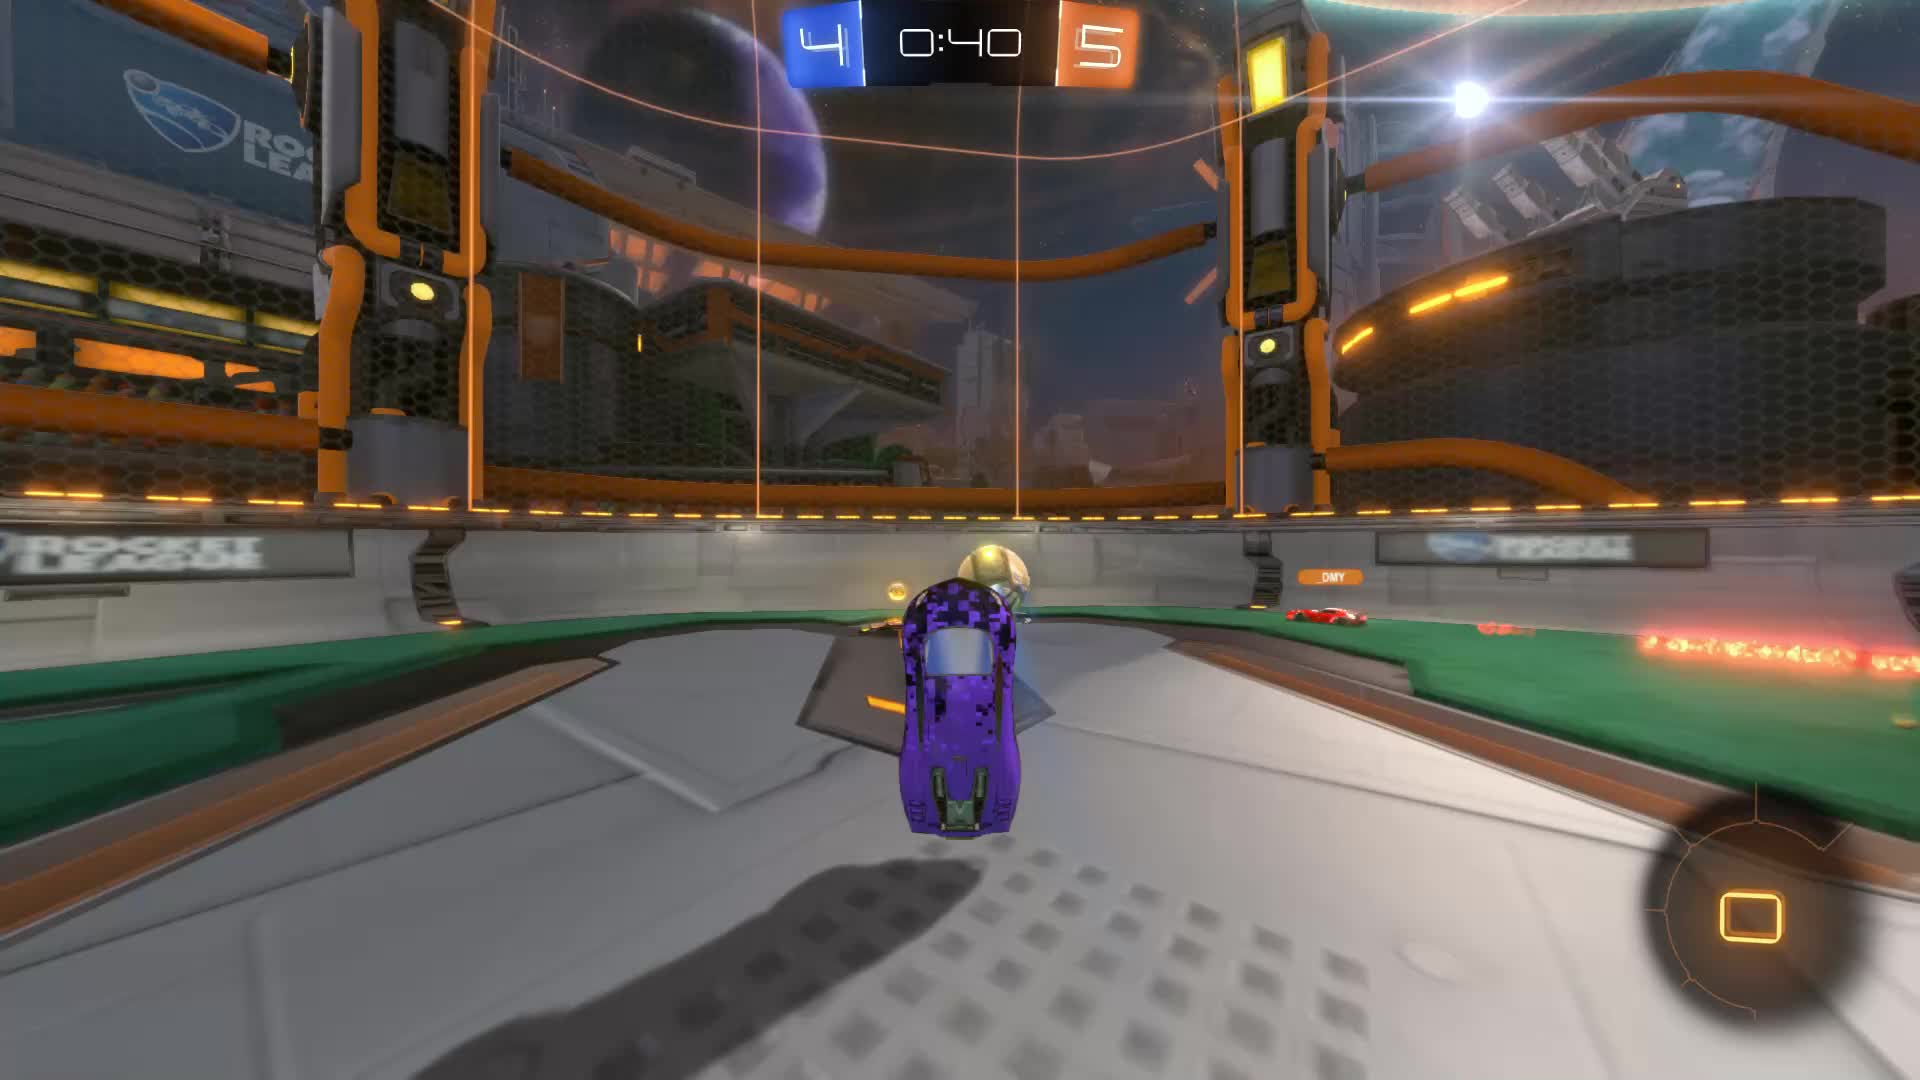 Cursed, Gif Your Game, GifYourGame, Rocket League, RocketLeague, Goal 10: Wezzi NL GIFs